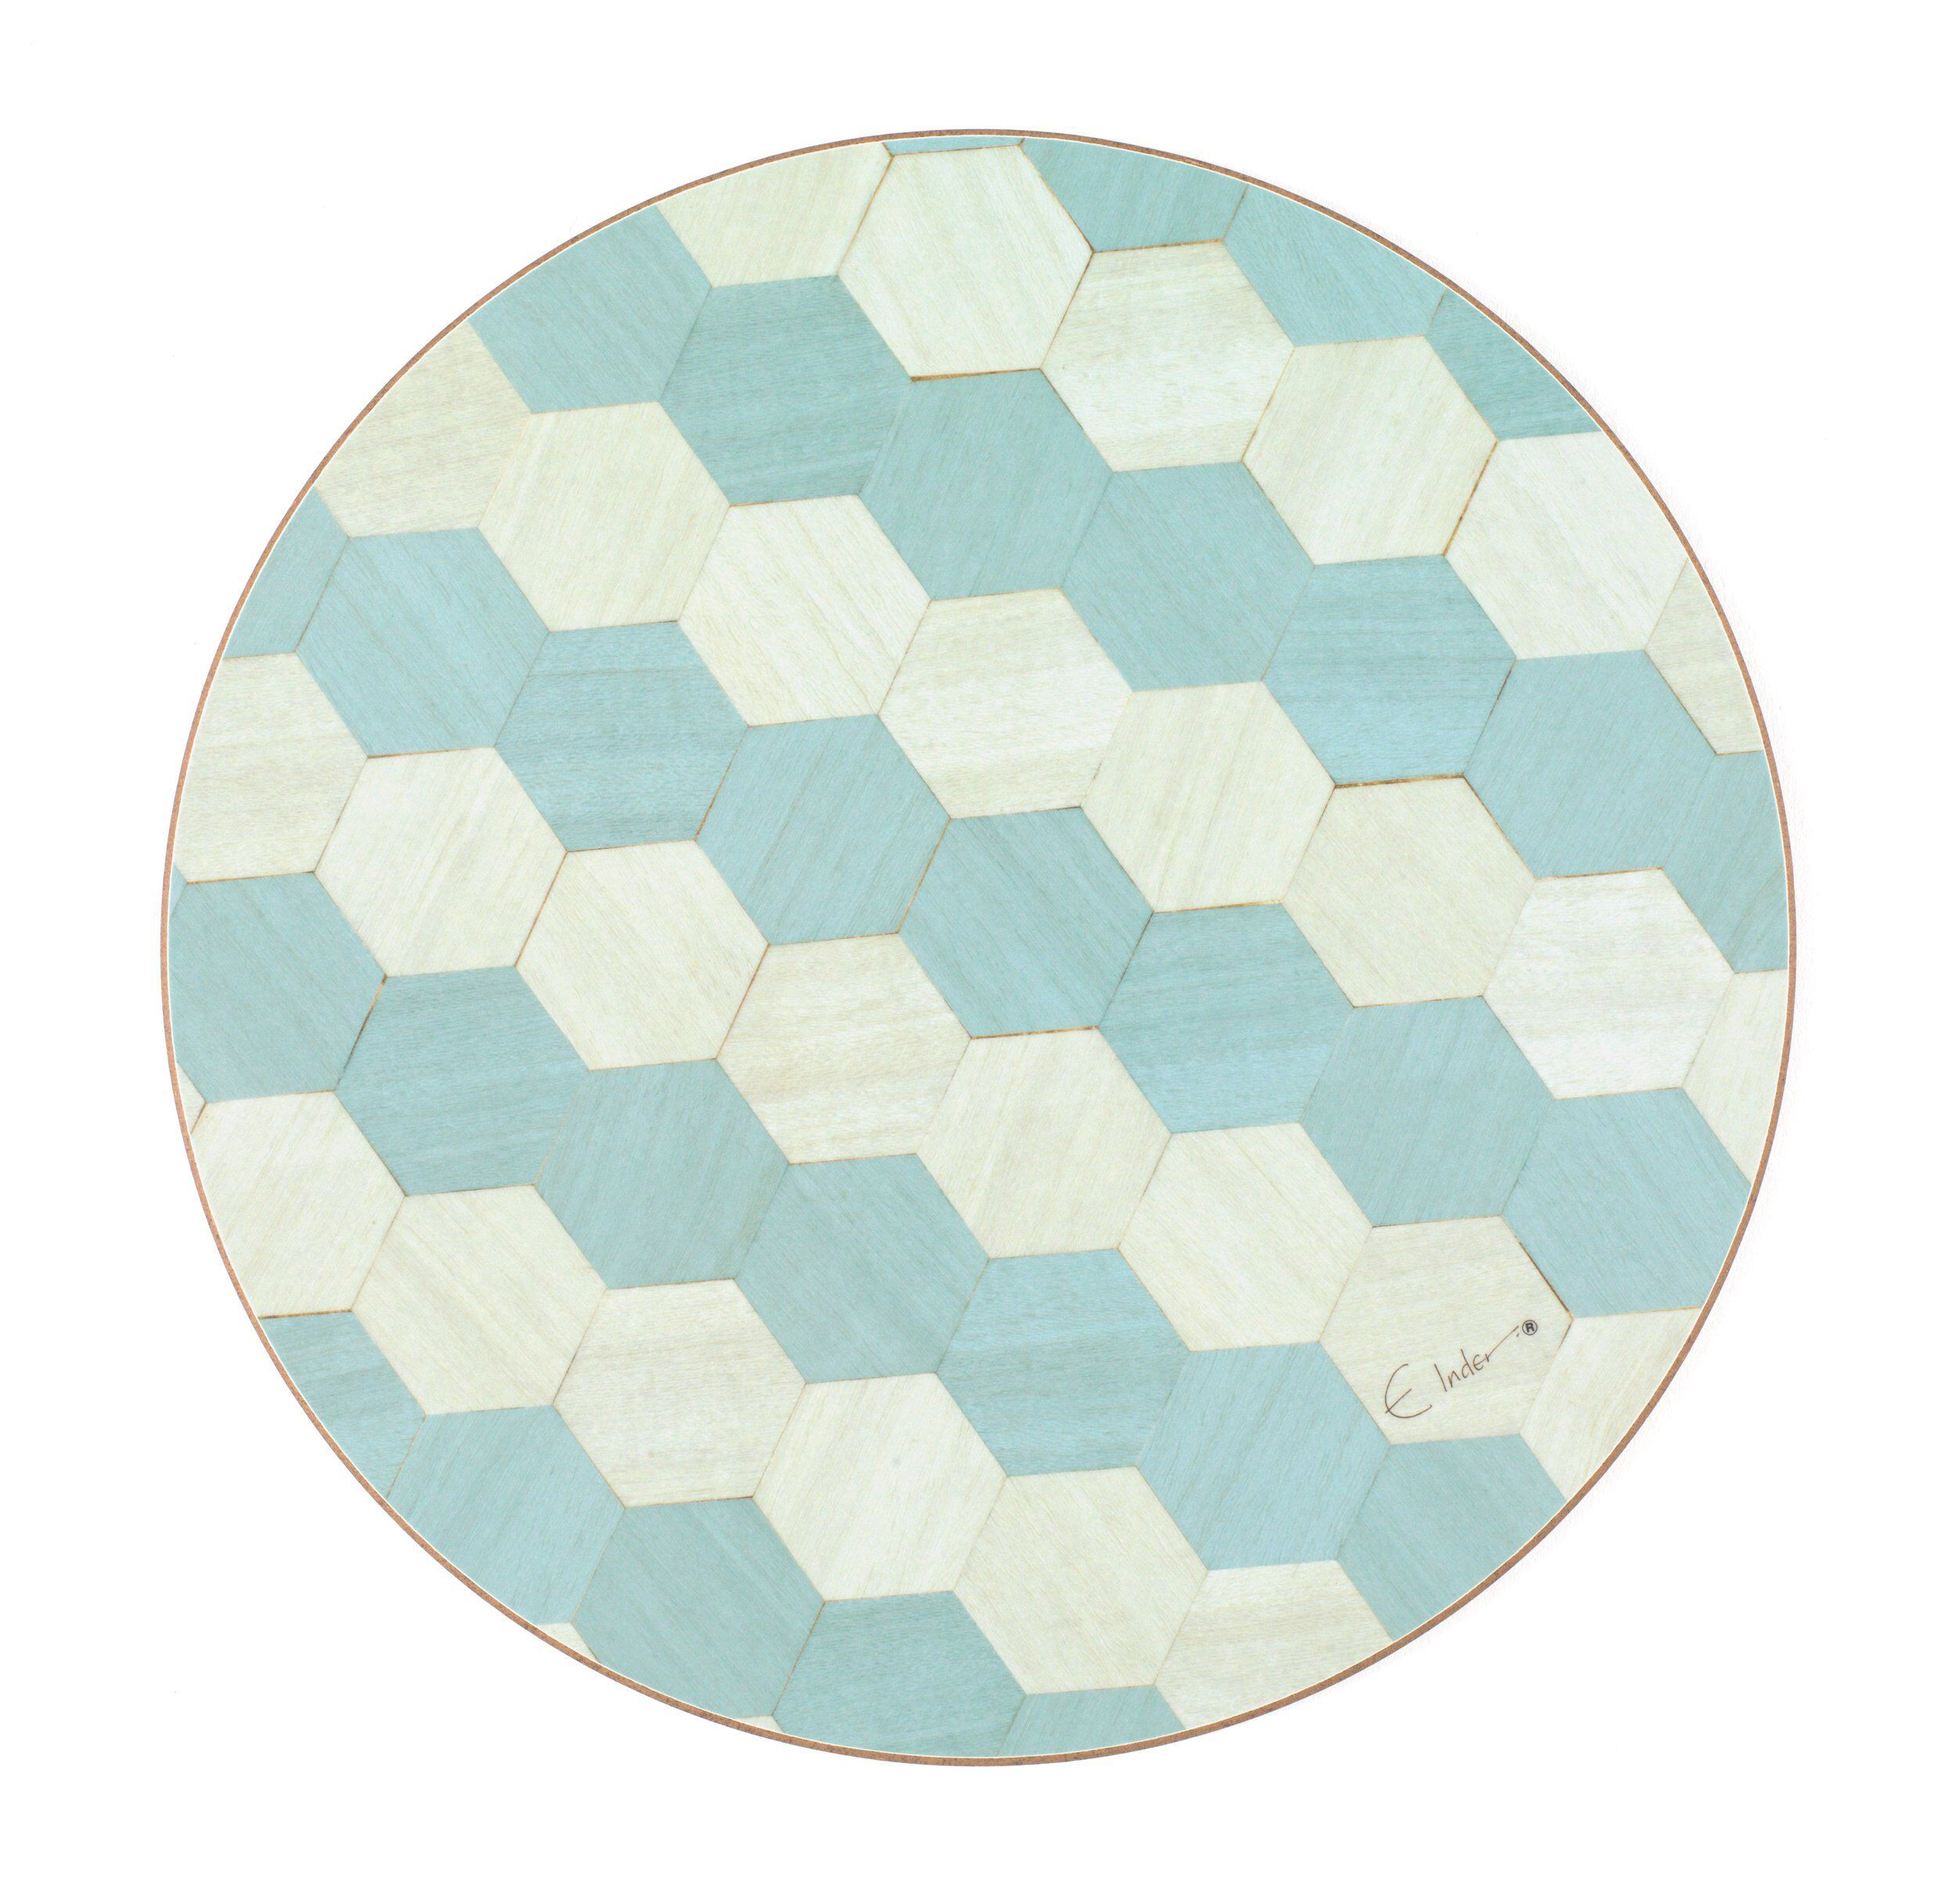 6 Round Table Mats Set Melamine Quality Heat Resistant 160 Degrees Celsius Ready To Post From Uk By Einderdesigns Duck Egg Blue Placemats Geometric Kitchen